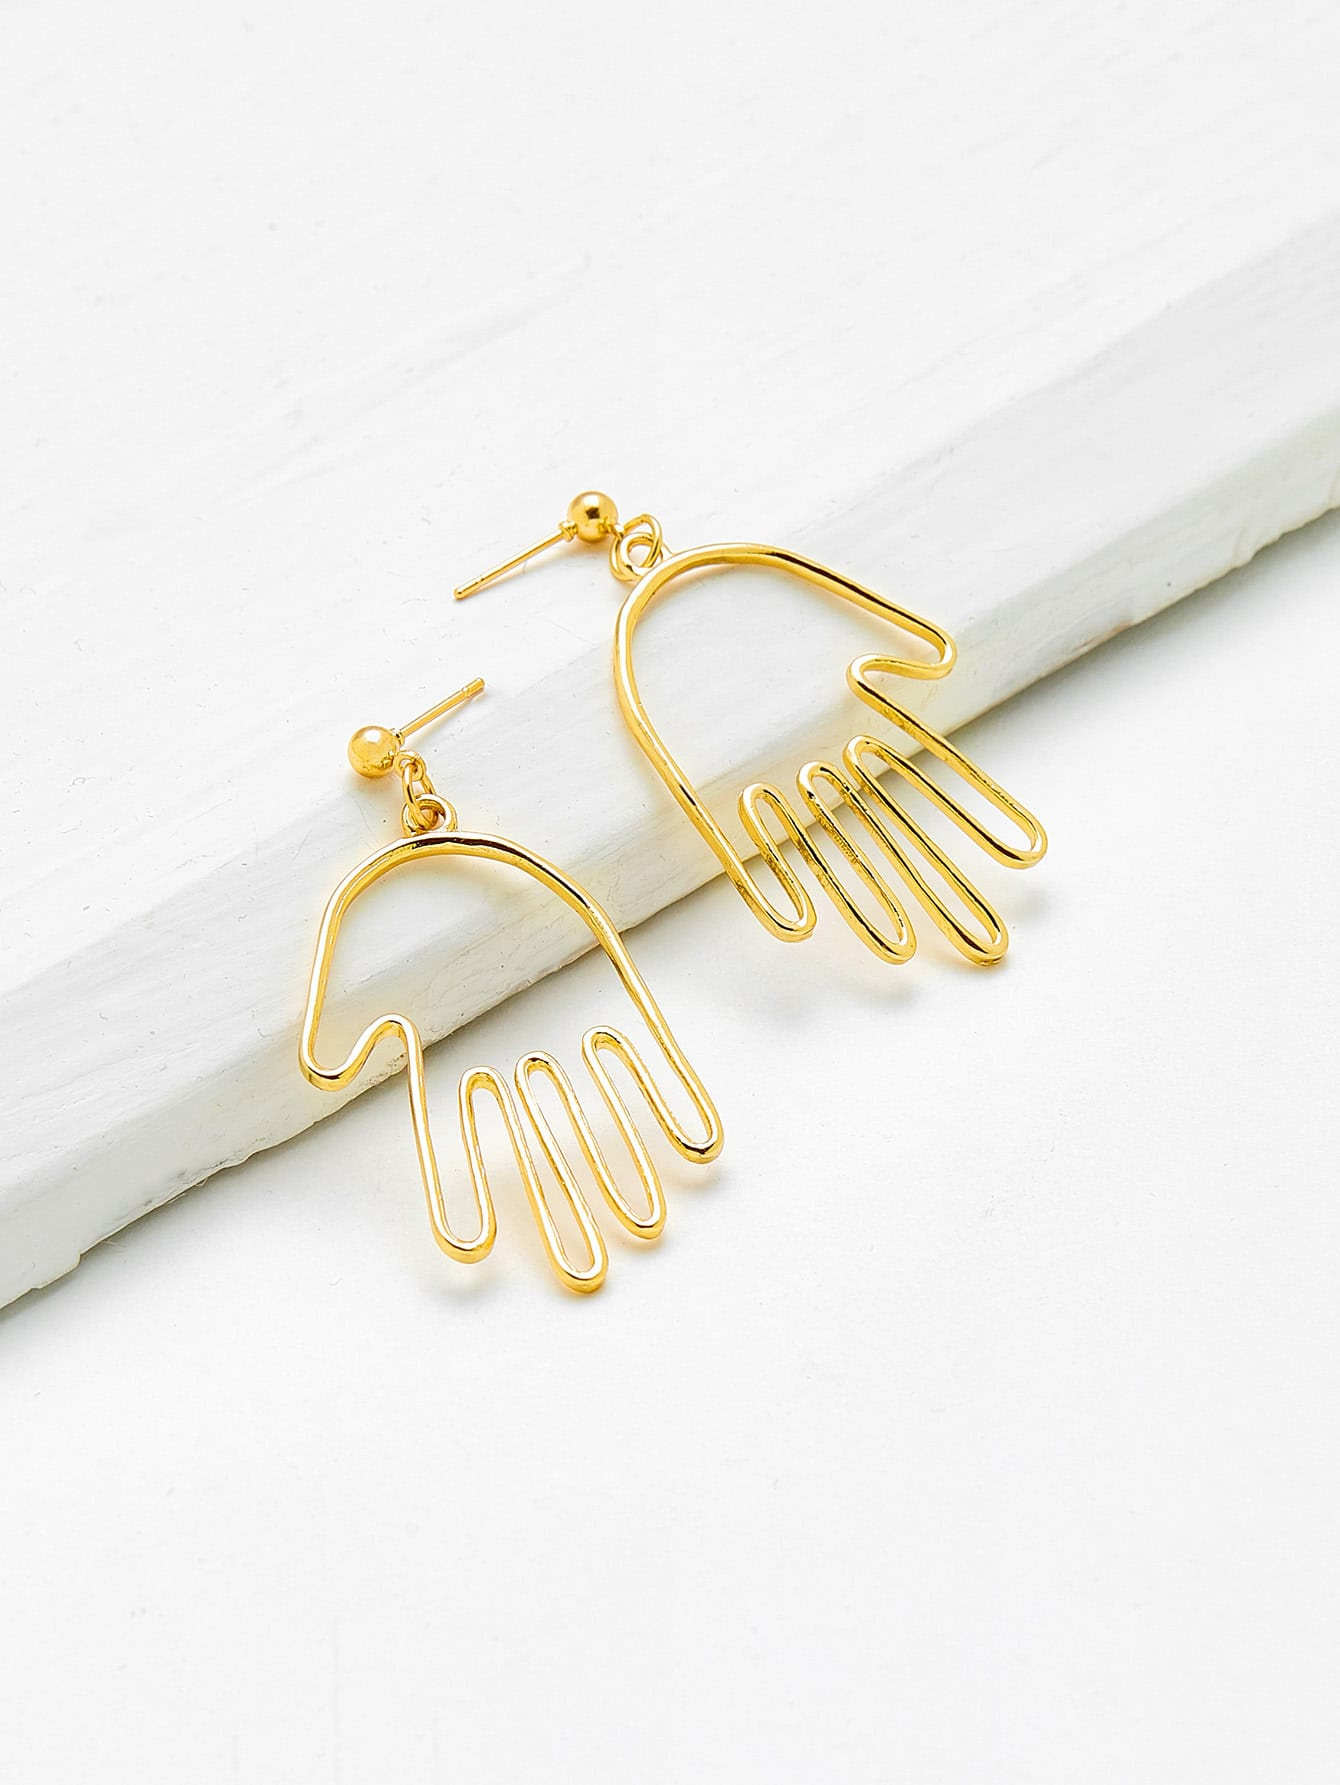 Hollow Palm Shaped Drop Earrings hollow water drop shaped drop earrings